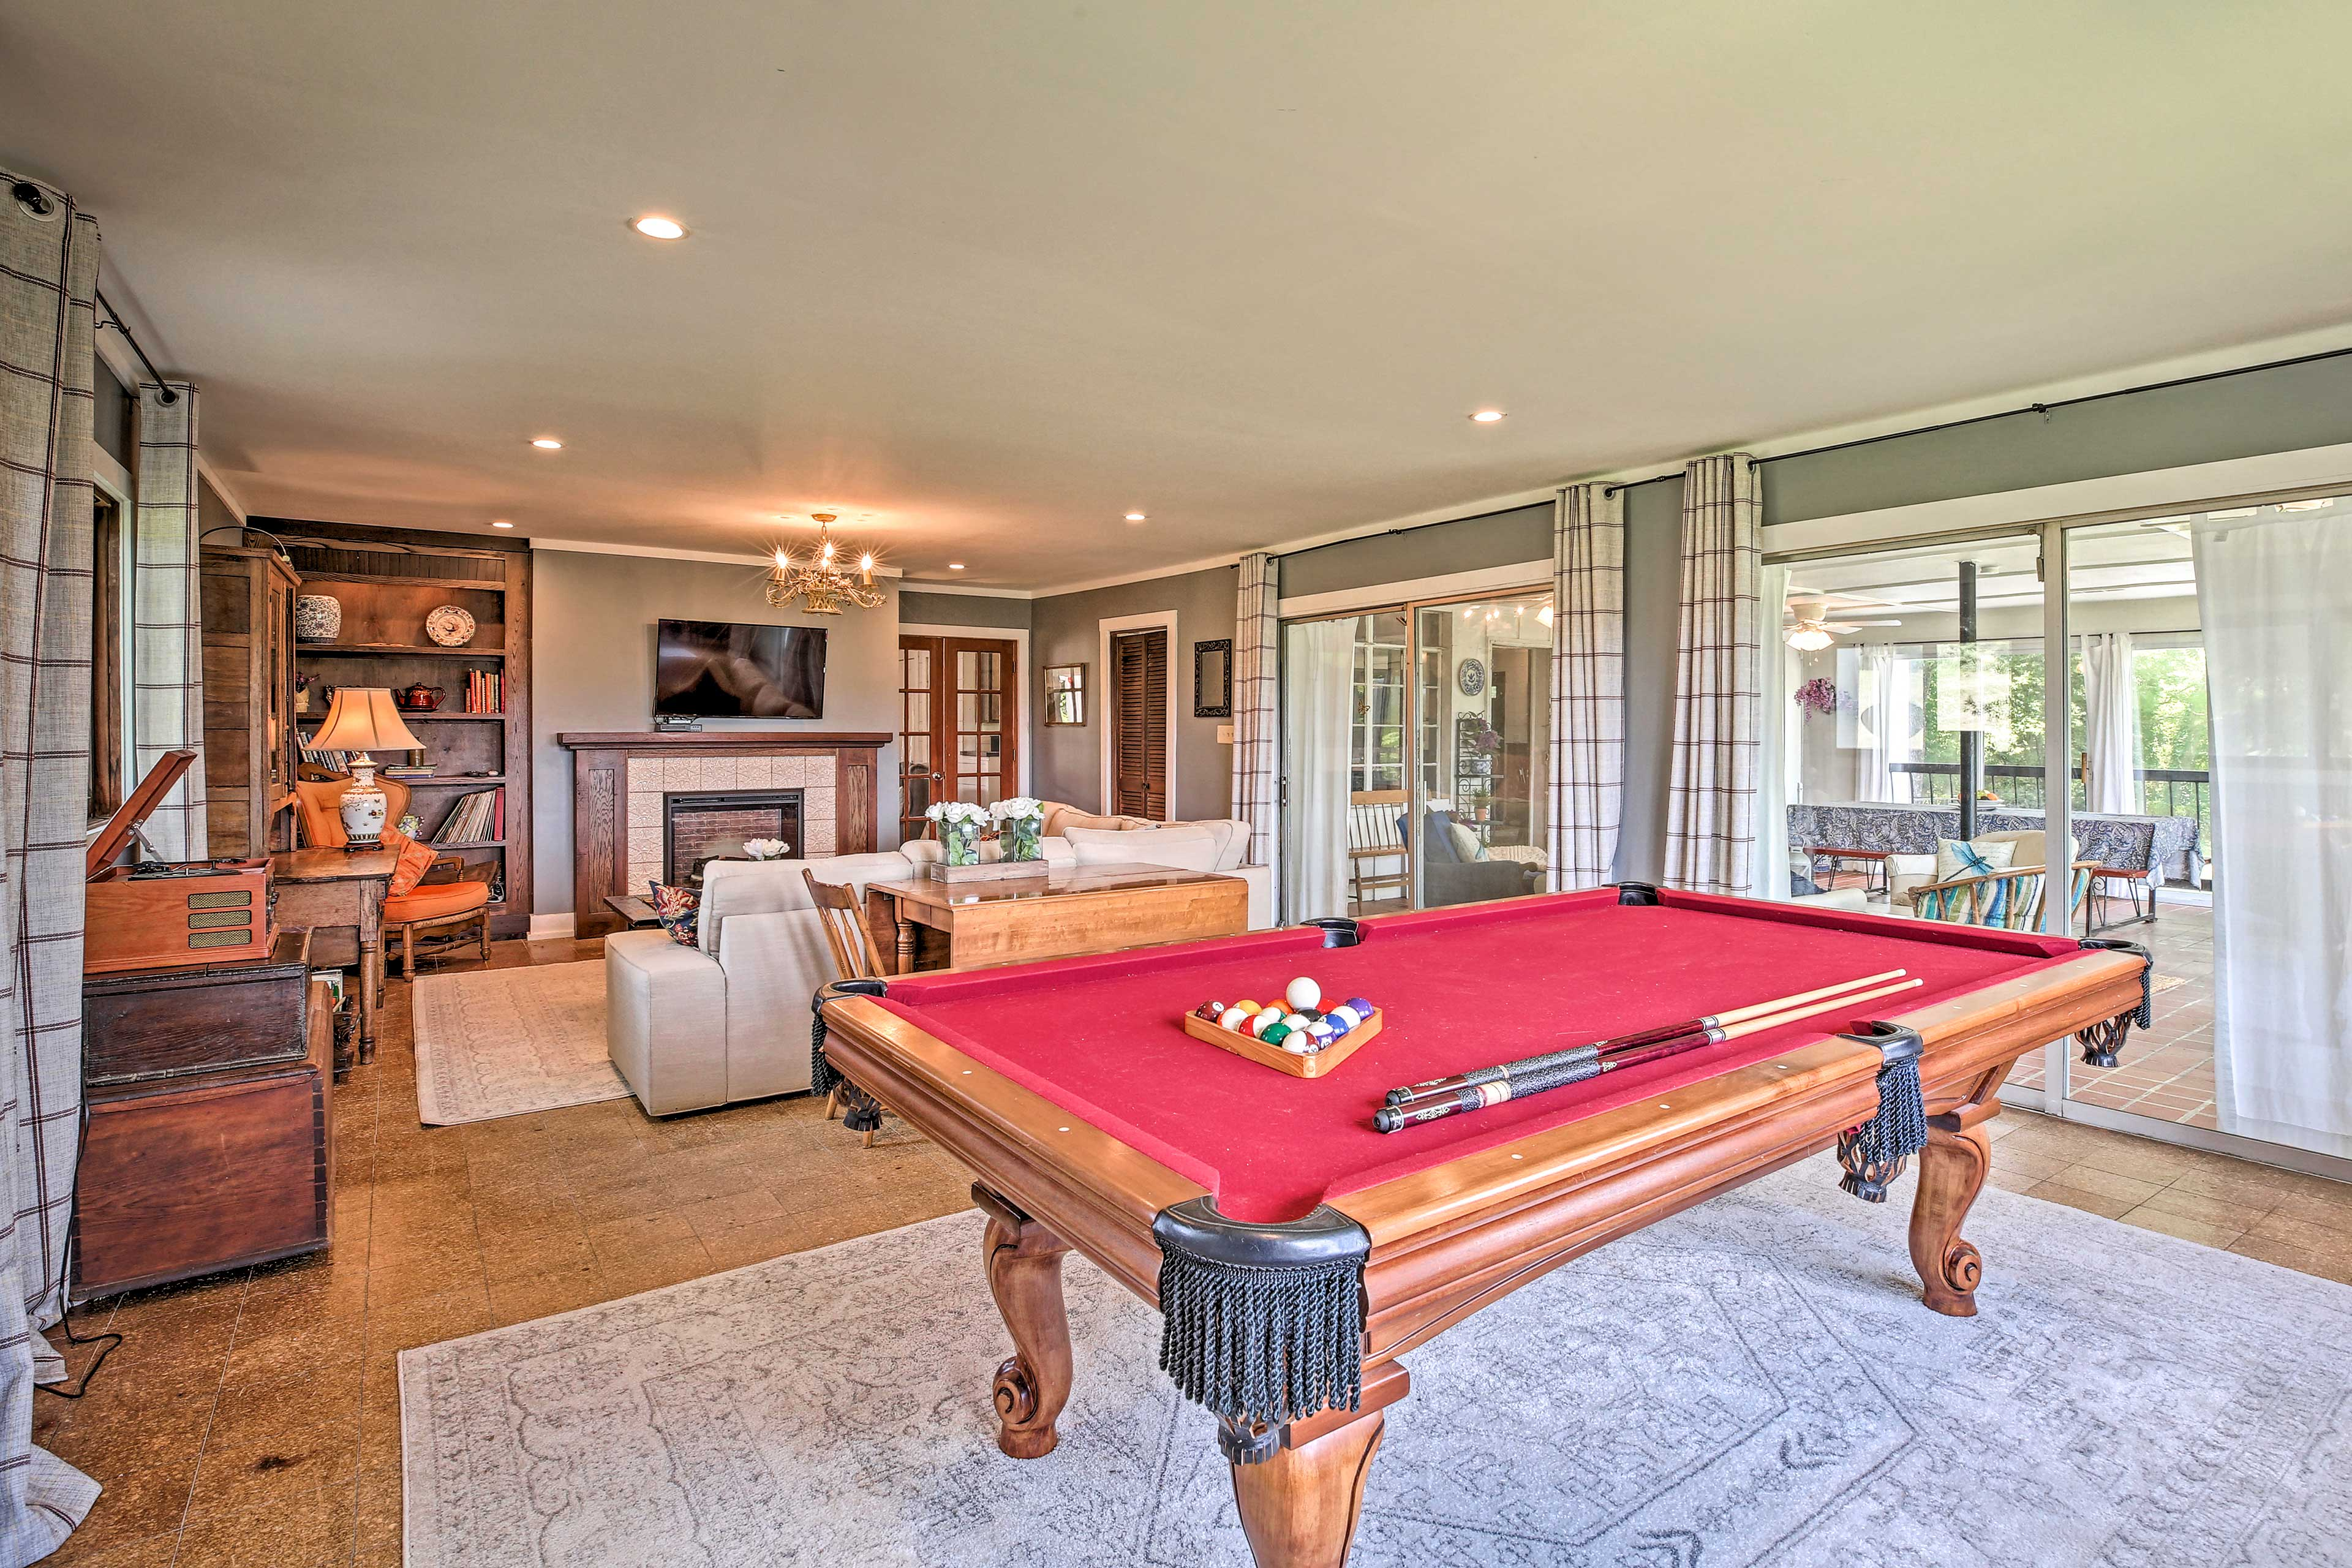 Put a record on the record player and enjoy a game of pool.